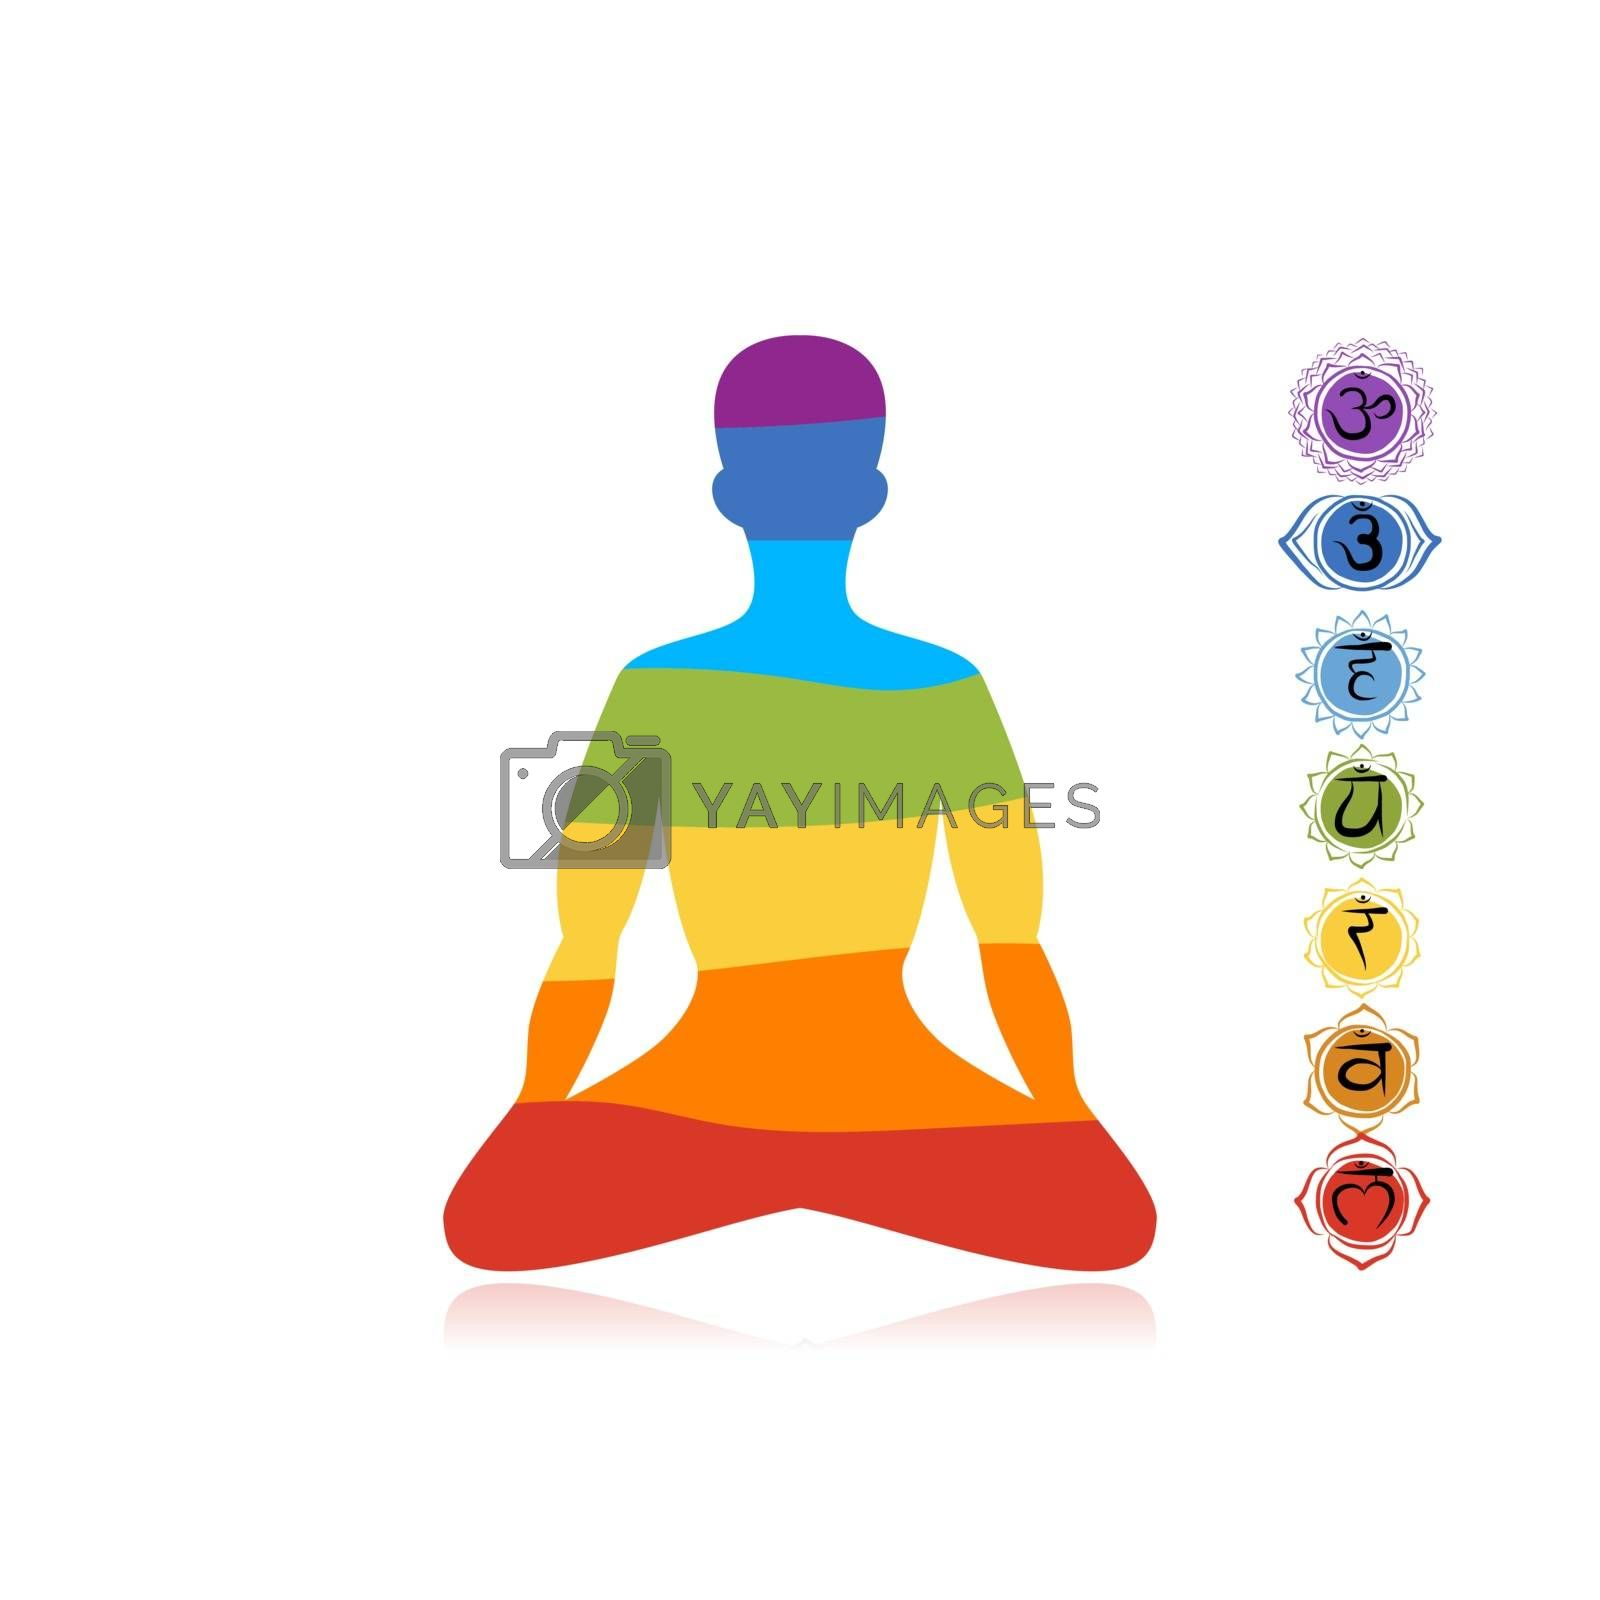 Yoga lotus pose with chakras for your design. Vector illustration